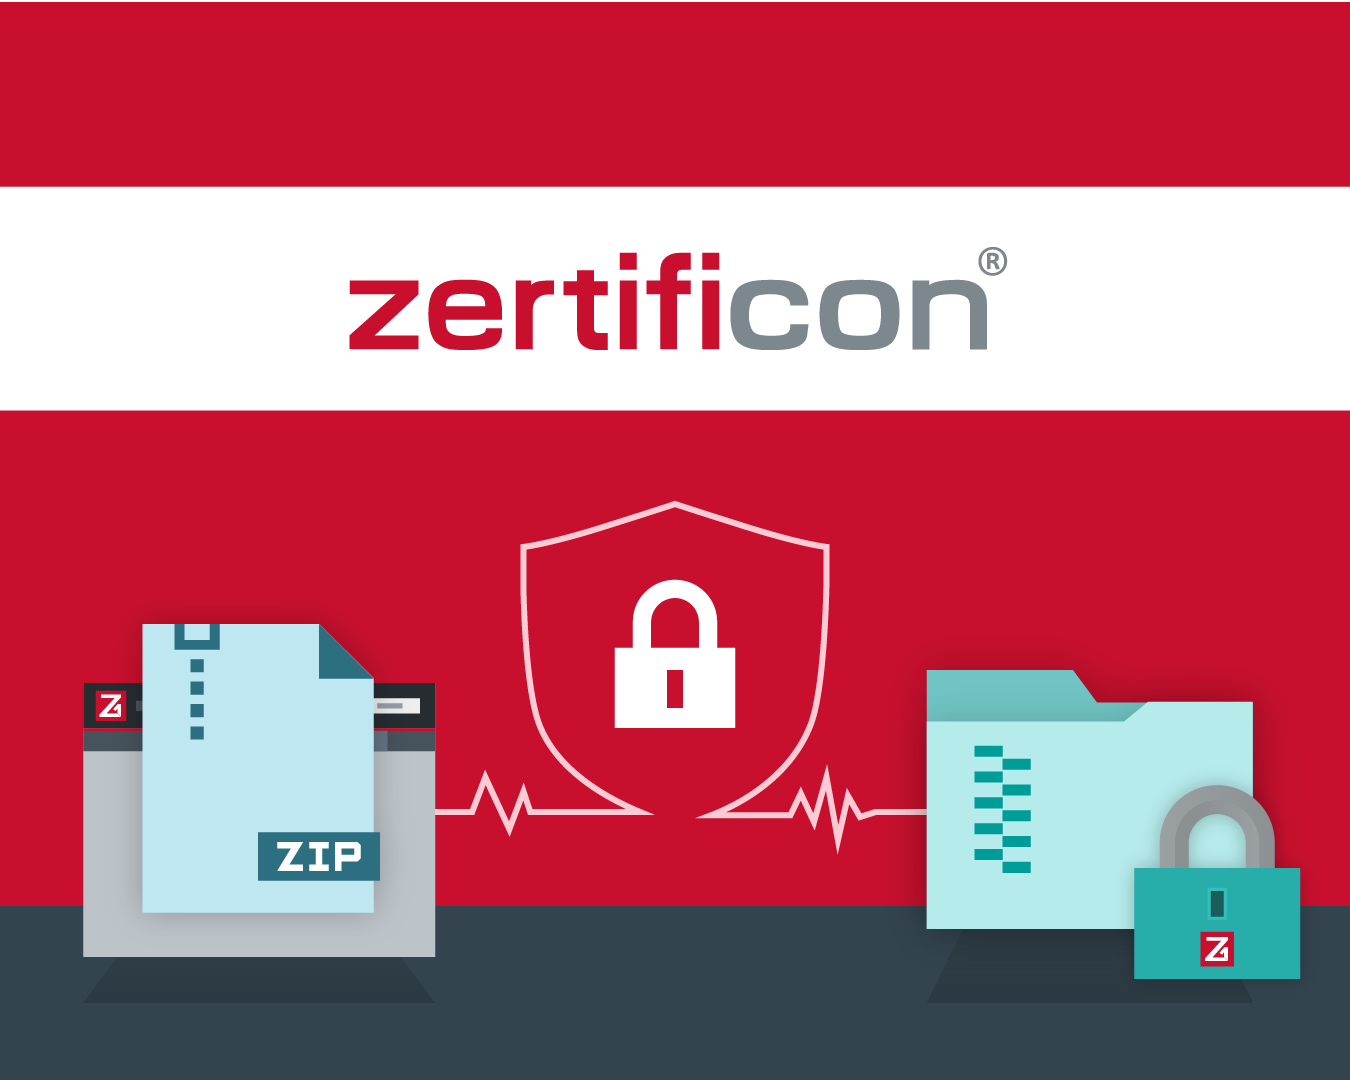 product picture of Zertificon Solutions GmbH